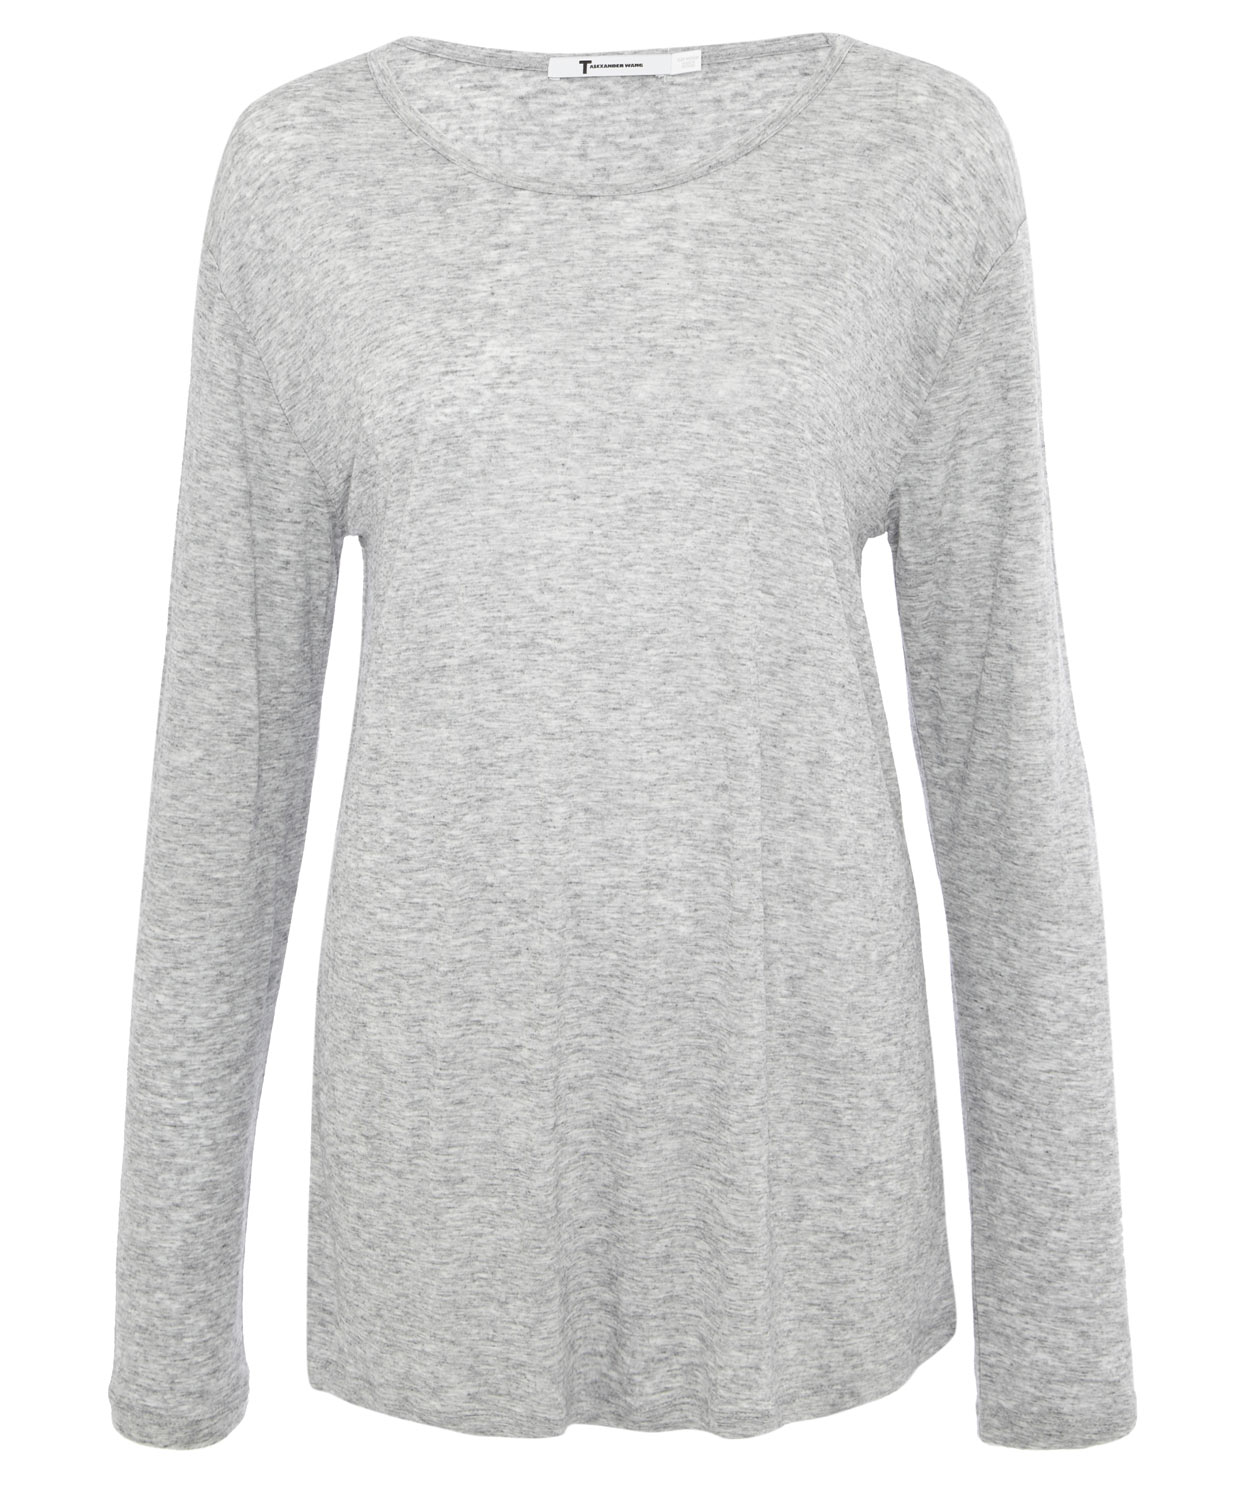 83fdb7636a8e8c T By Alexander Wang Grey Marl Long Sleeve Top in Gray - Lyst